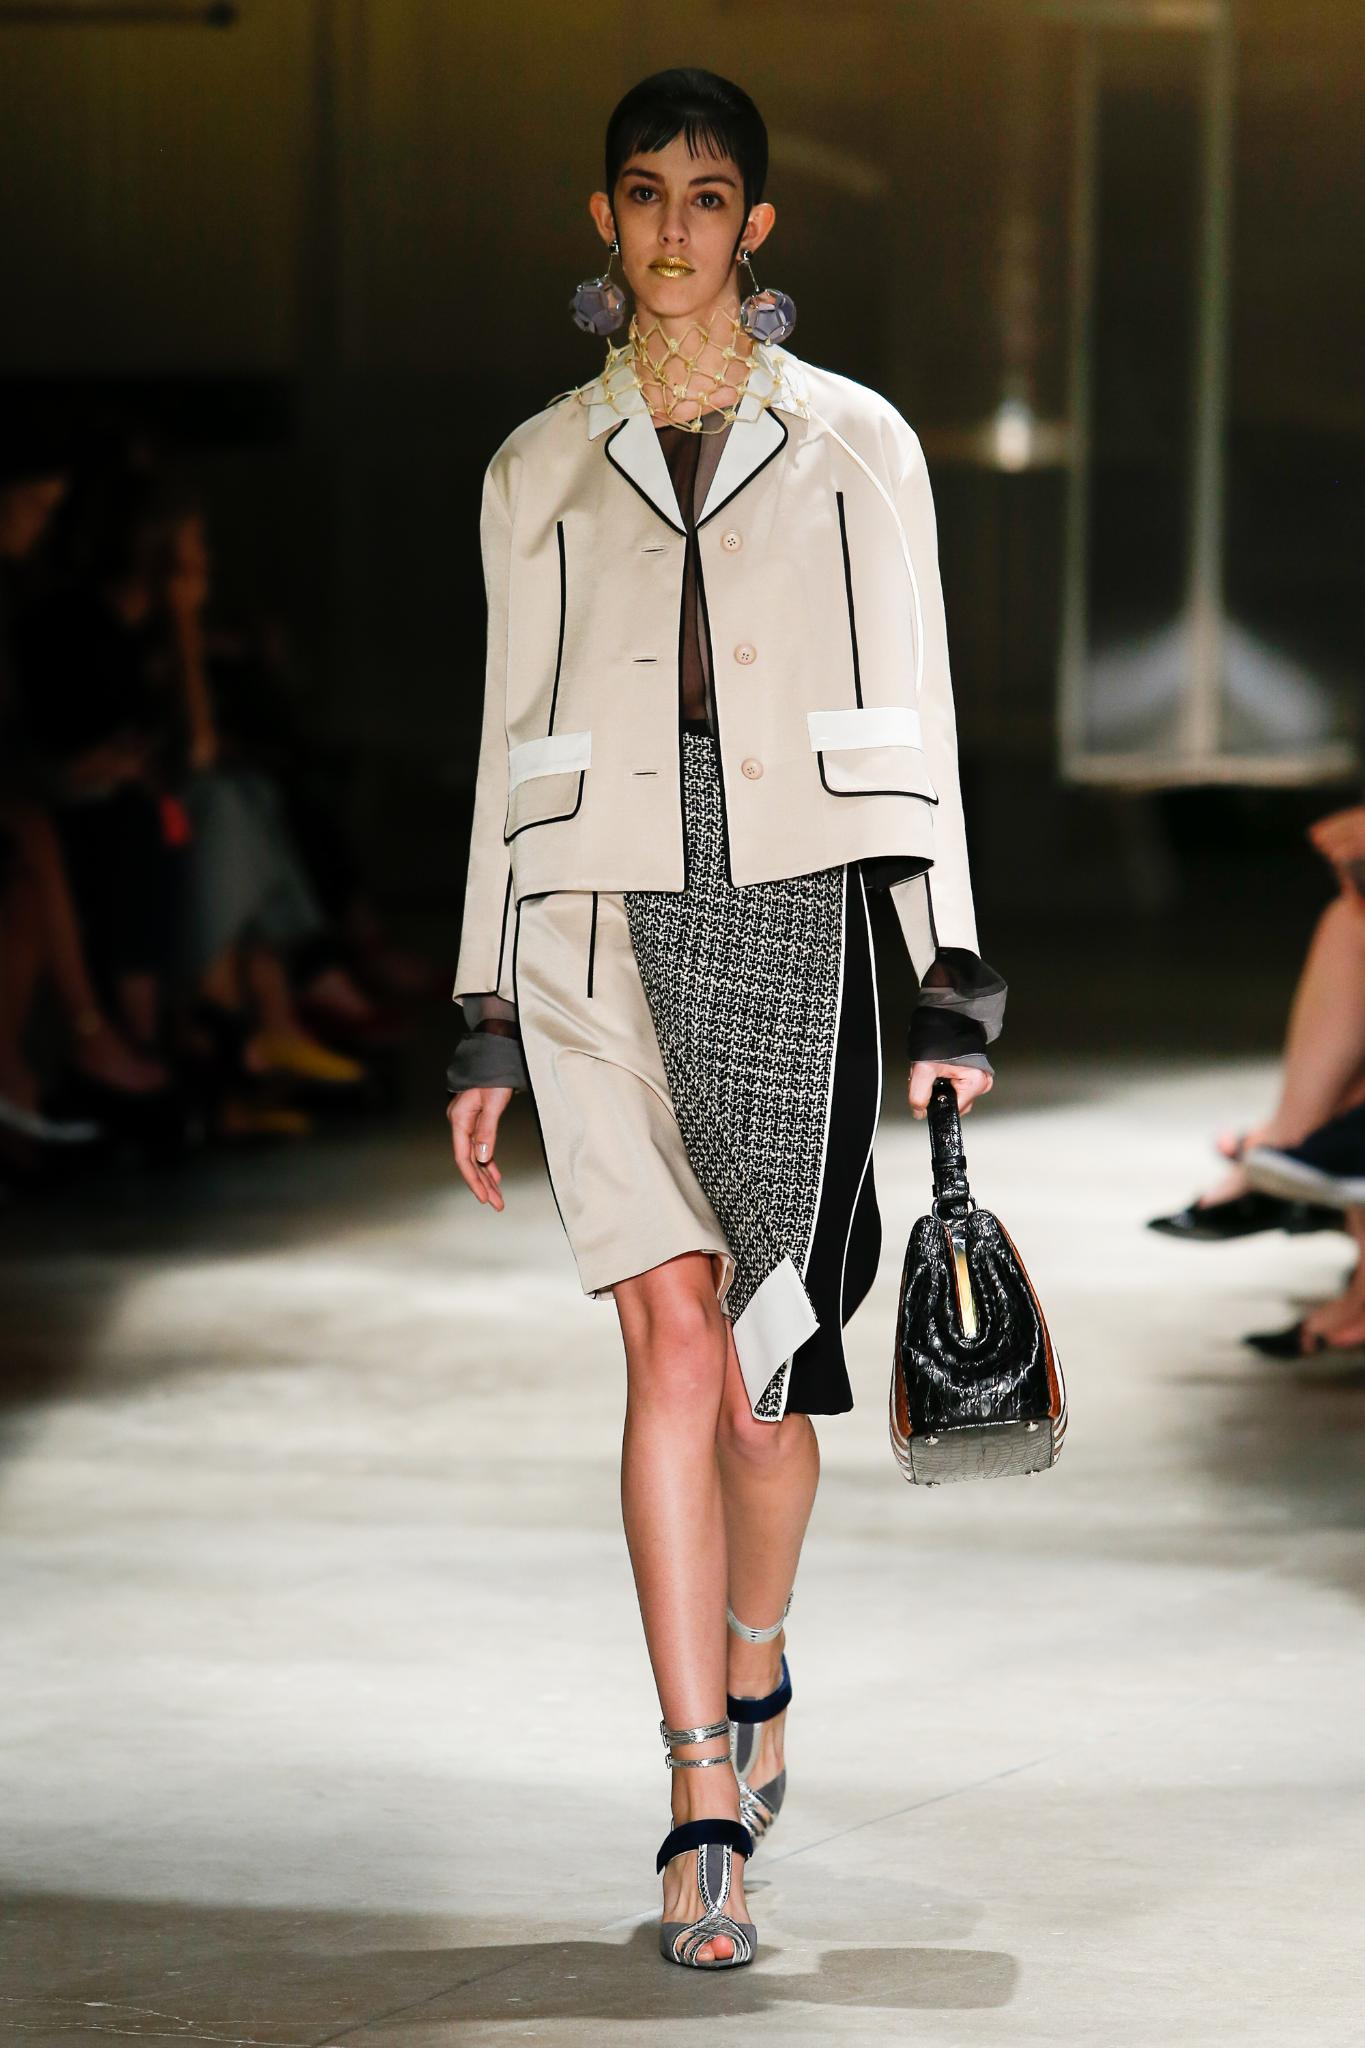 At the heart of Miuccia Prada's spring/summer collection were boxy jackets and midi skirts decorated in stripes, embellishments and mannish tweeds.